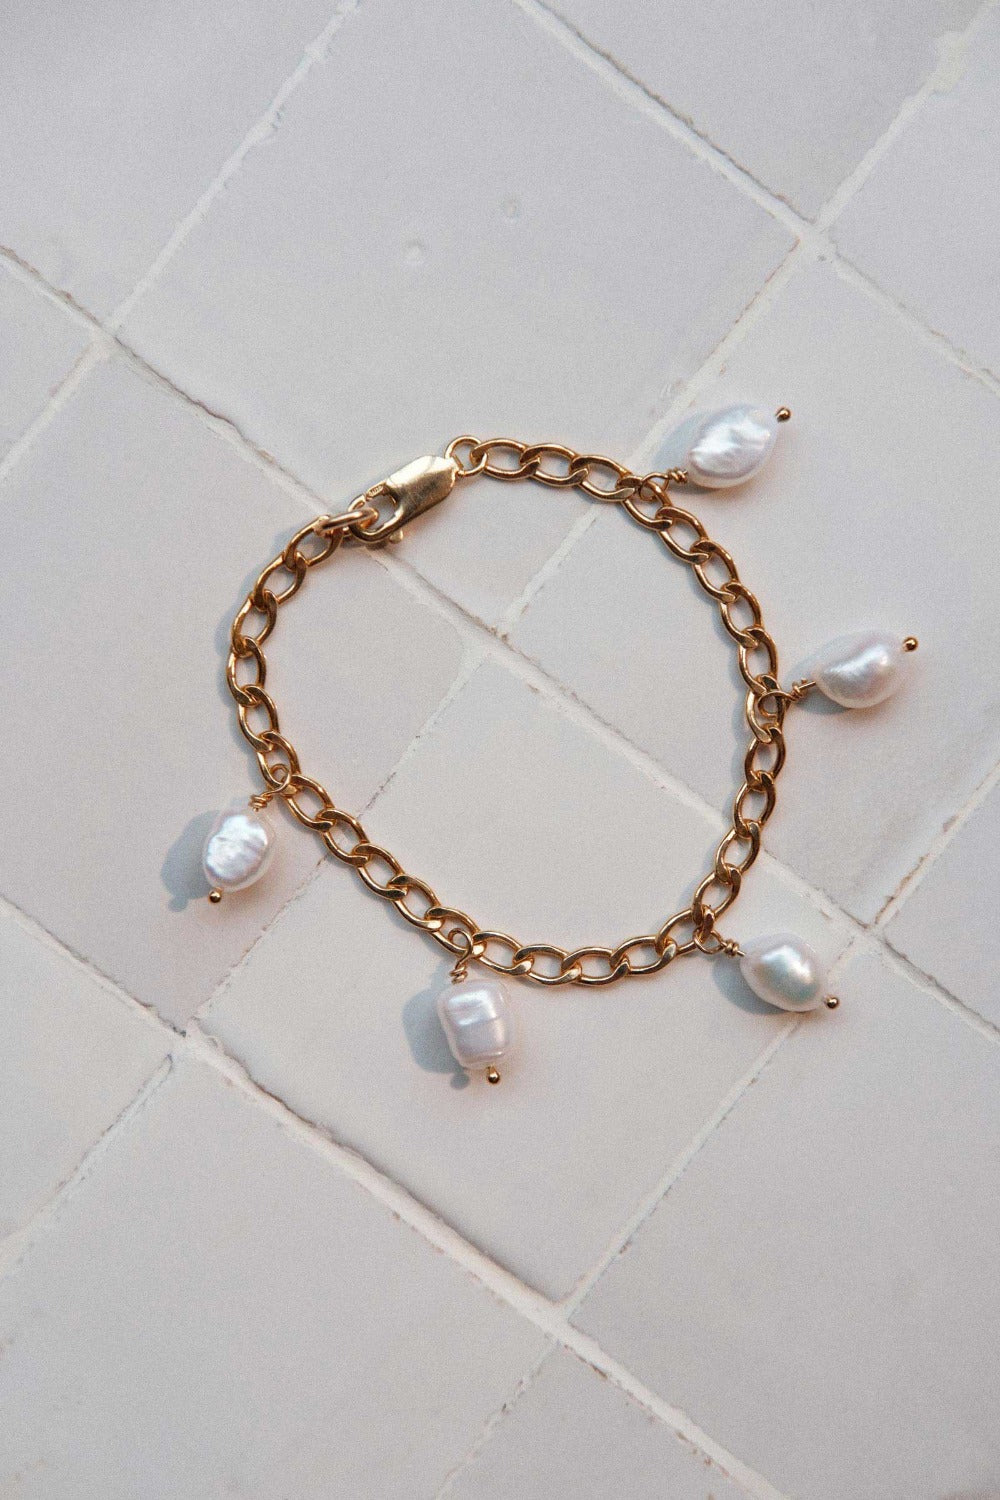 a gold filled curb chain bracelet with pearl drops on a tiled surface